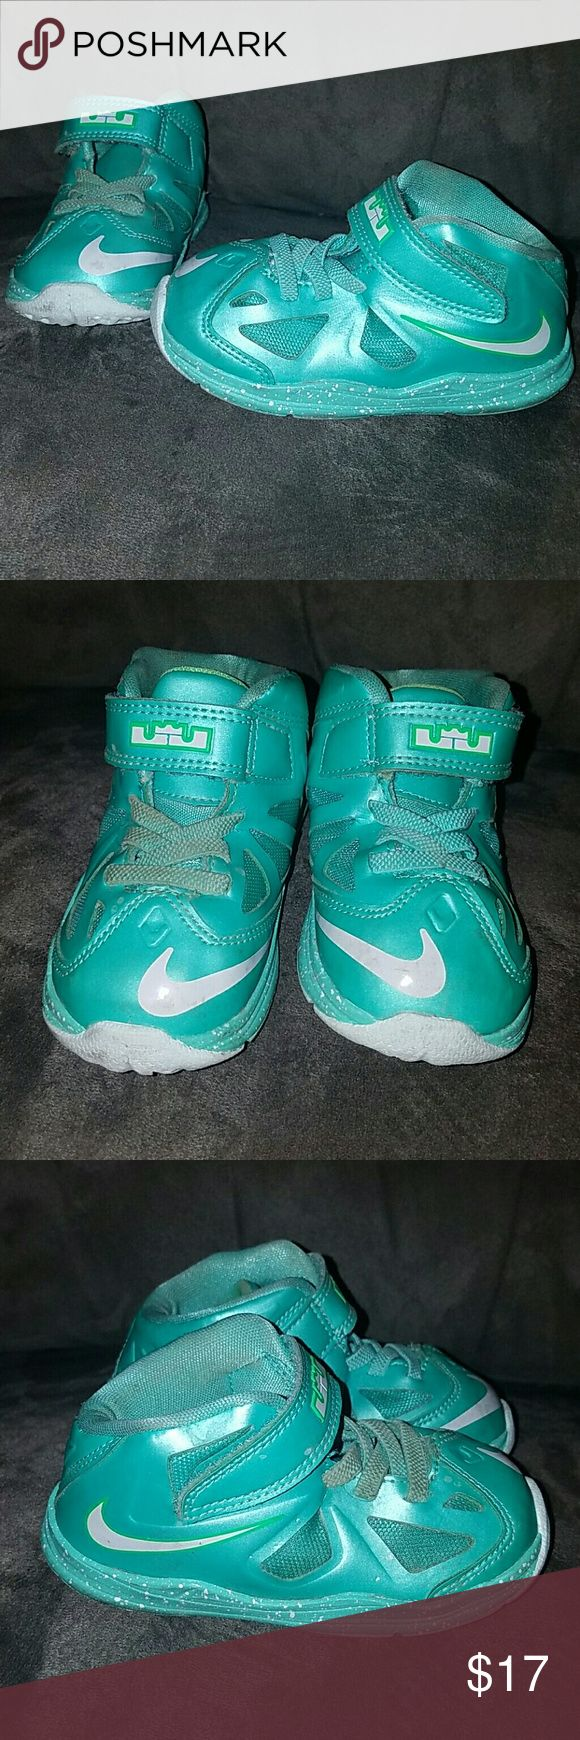 Size 7c baby/ toddler LeBron James/ Nike shoes Aqua colored size 7c unisex LeBron James gym shoes. Really good condition. Bottom of shoes look almost new. My daughter wasn't even walking when these were her size! Super fun color and great for any stylish little cutie! Nike Shoes Baby & Walker